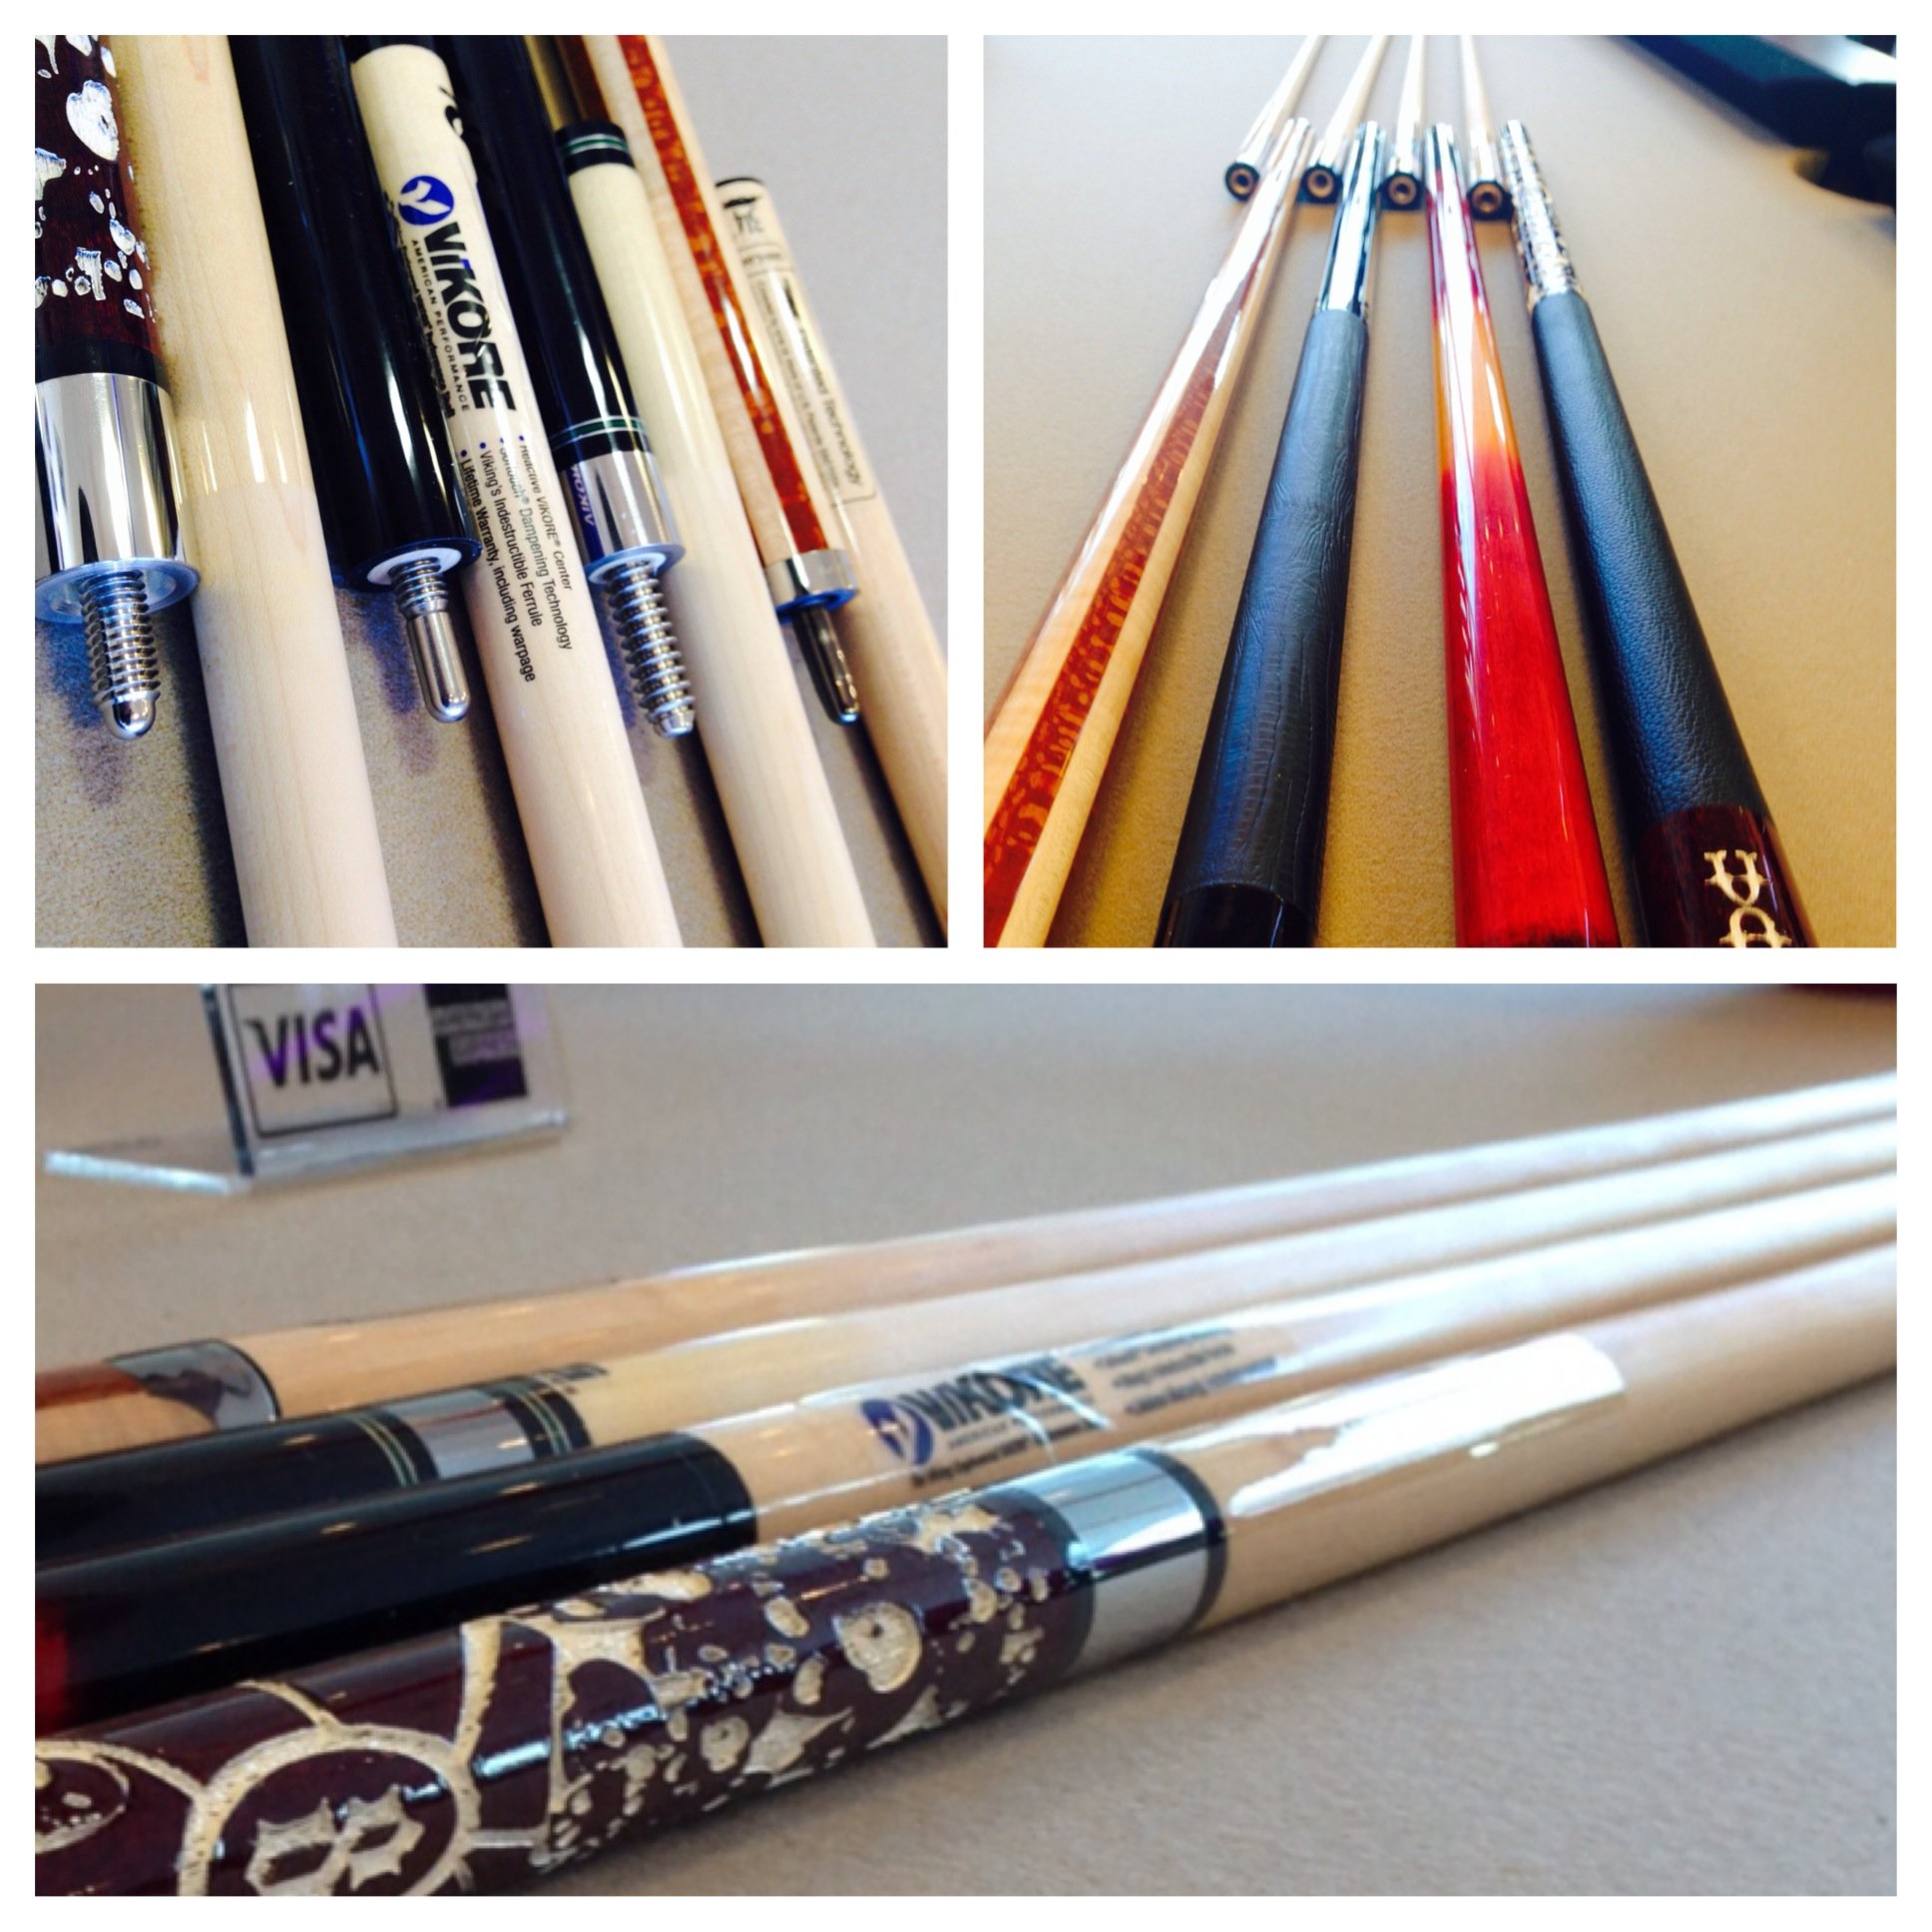 Denver's best selection of pool cues